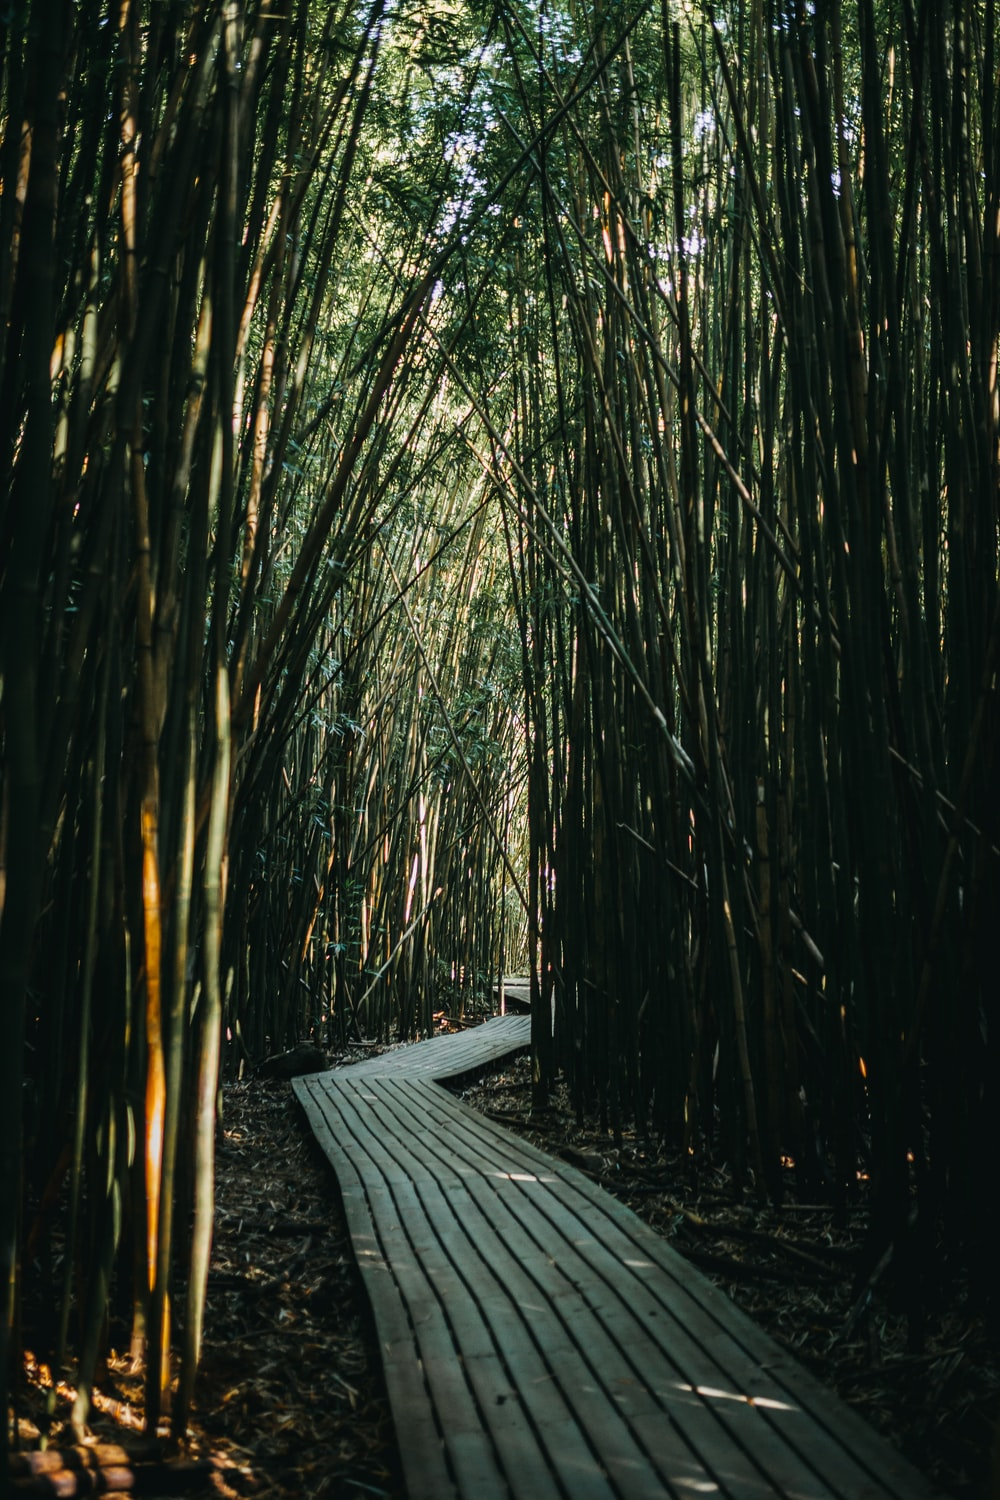 pathway in bamboo field